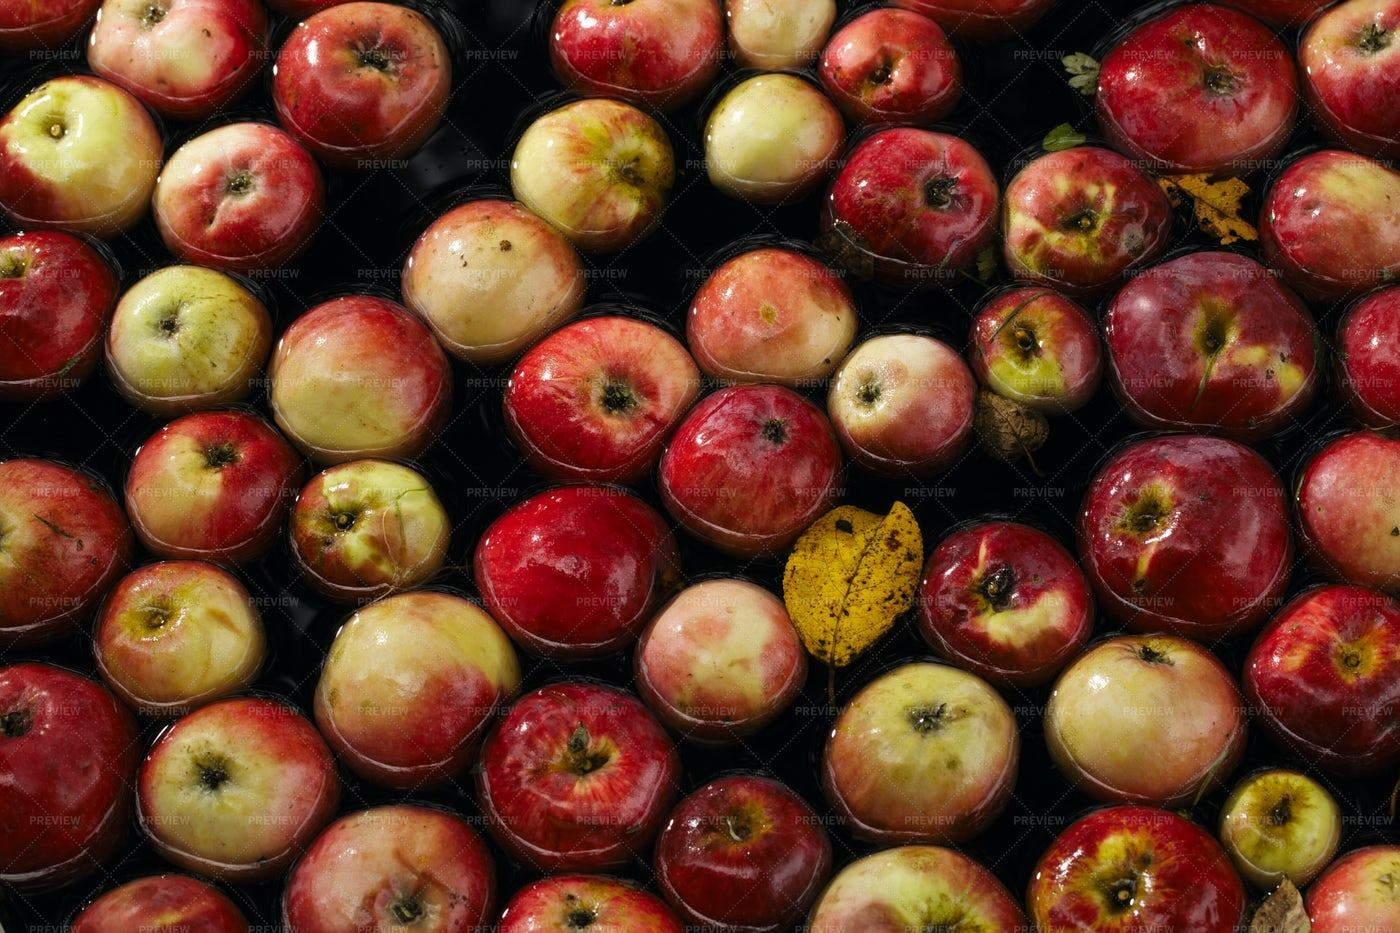 Apples In Water: Stock Photos